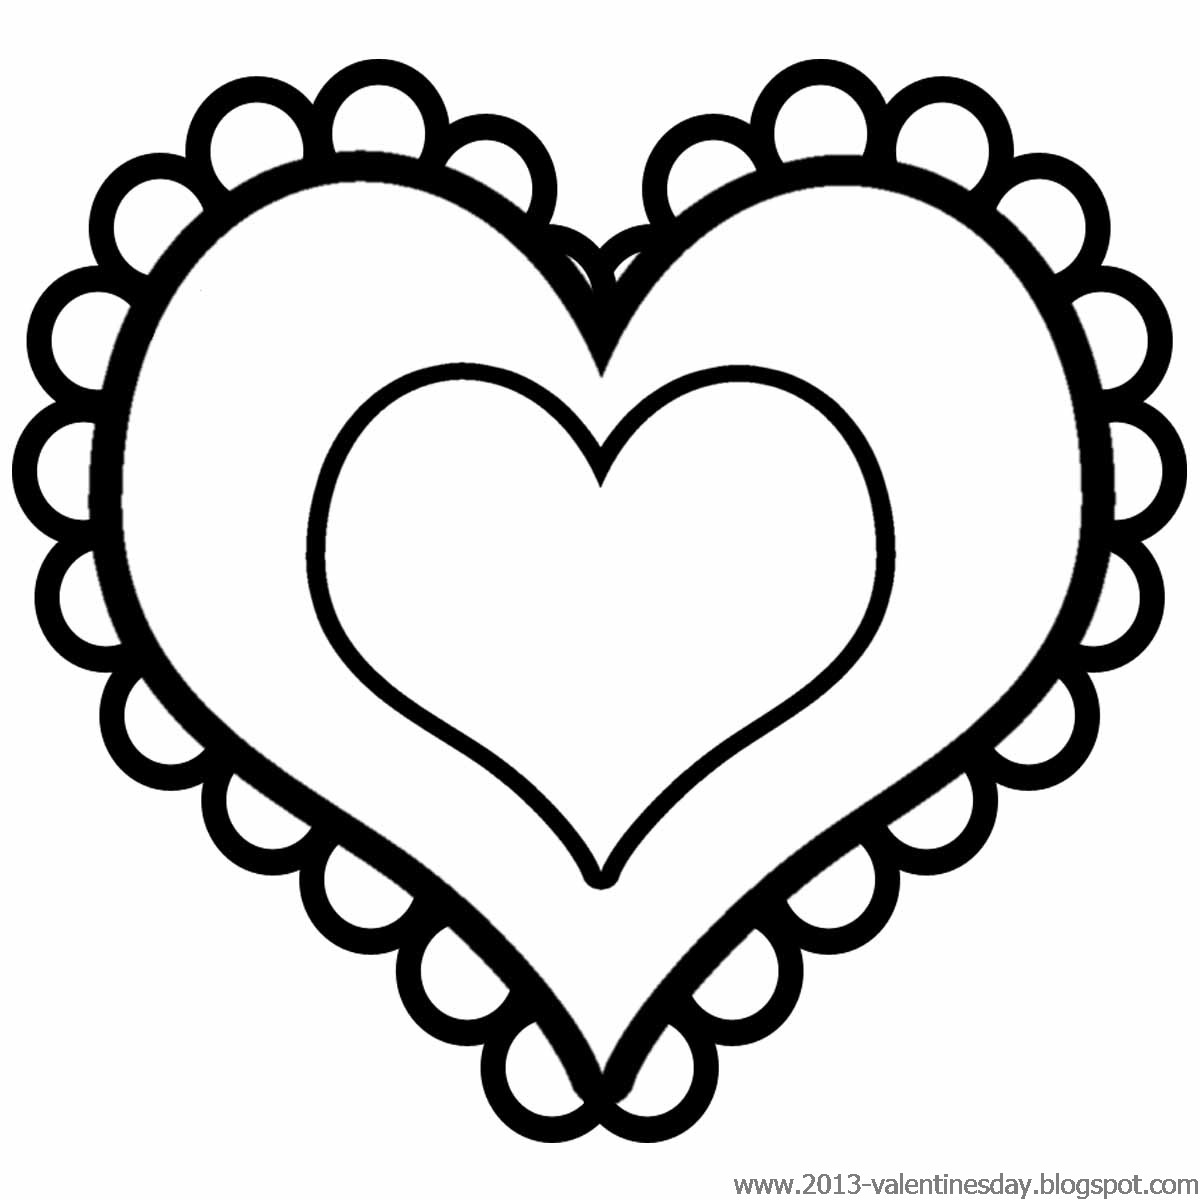 Cute hearts clipart black and white svg black and white download Cute hearts clipart black and white - ClipartFest svg black and white download